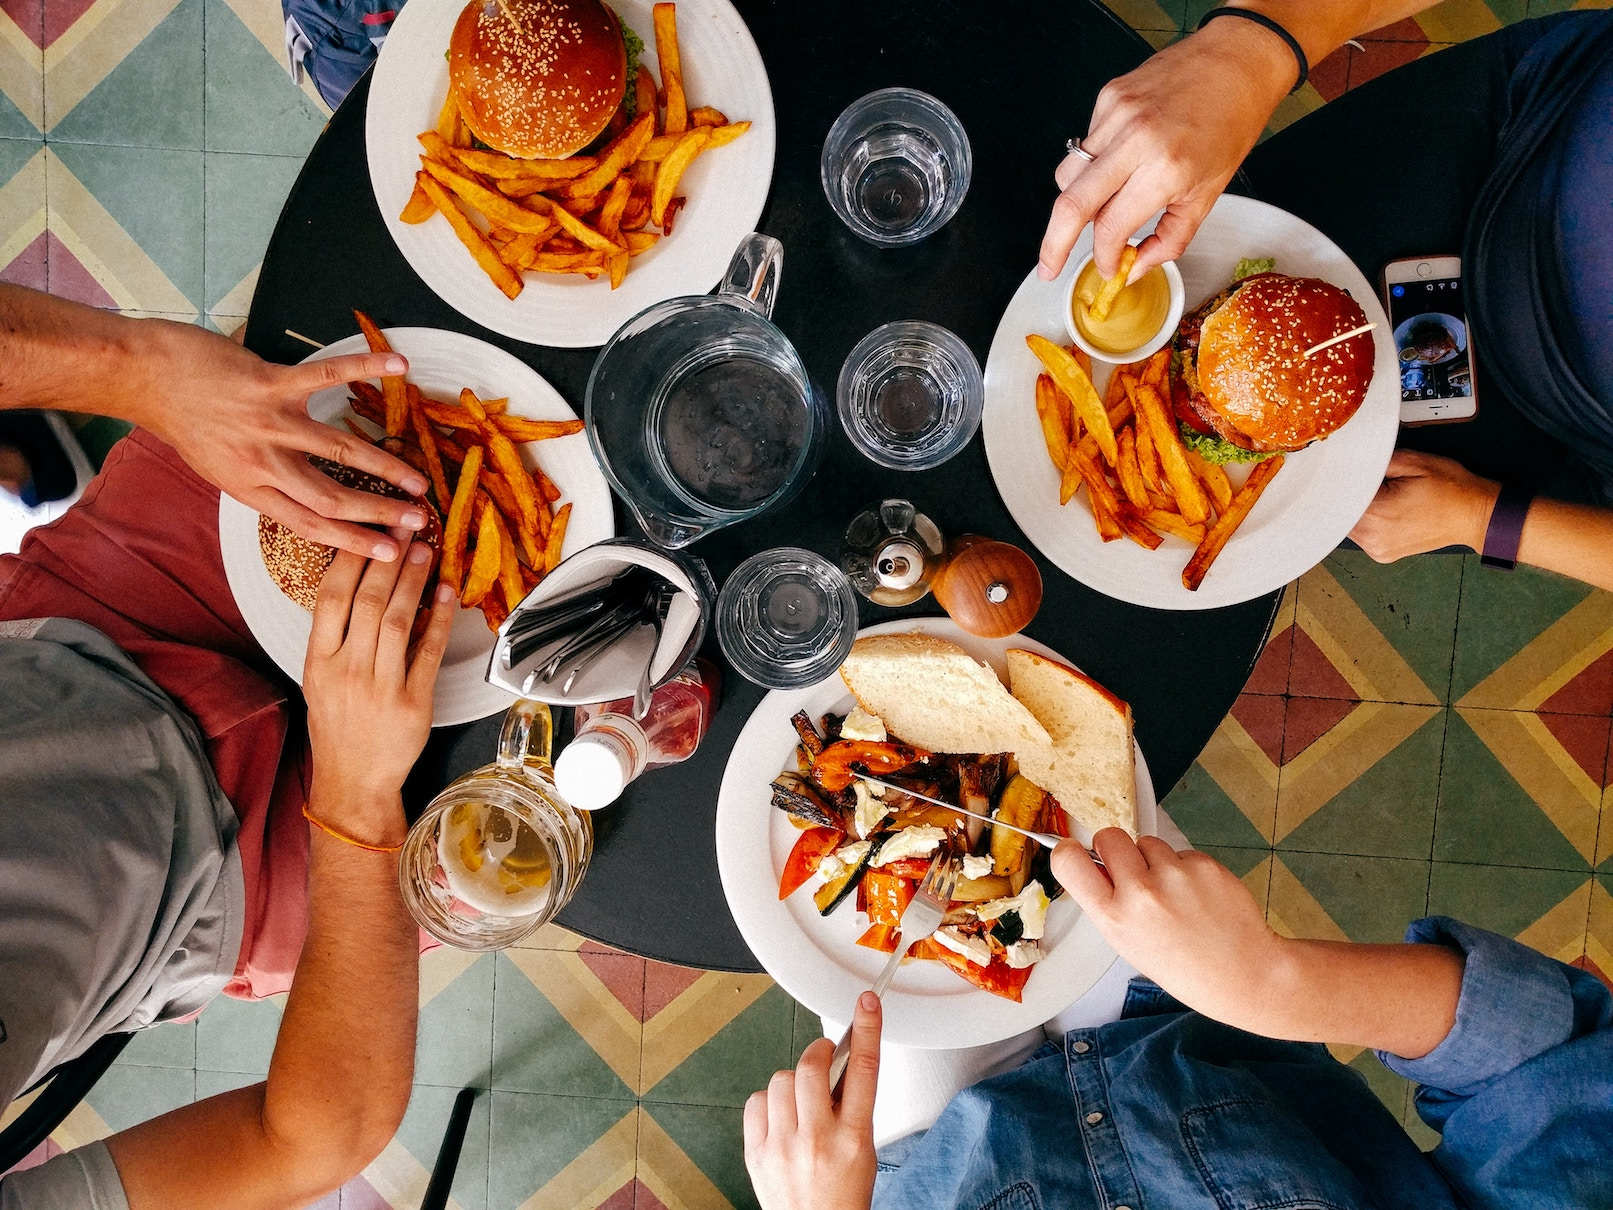 Do you find yourself Overeating? Is it normal? Or a problem?